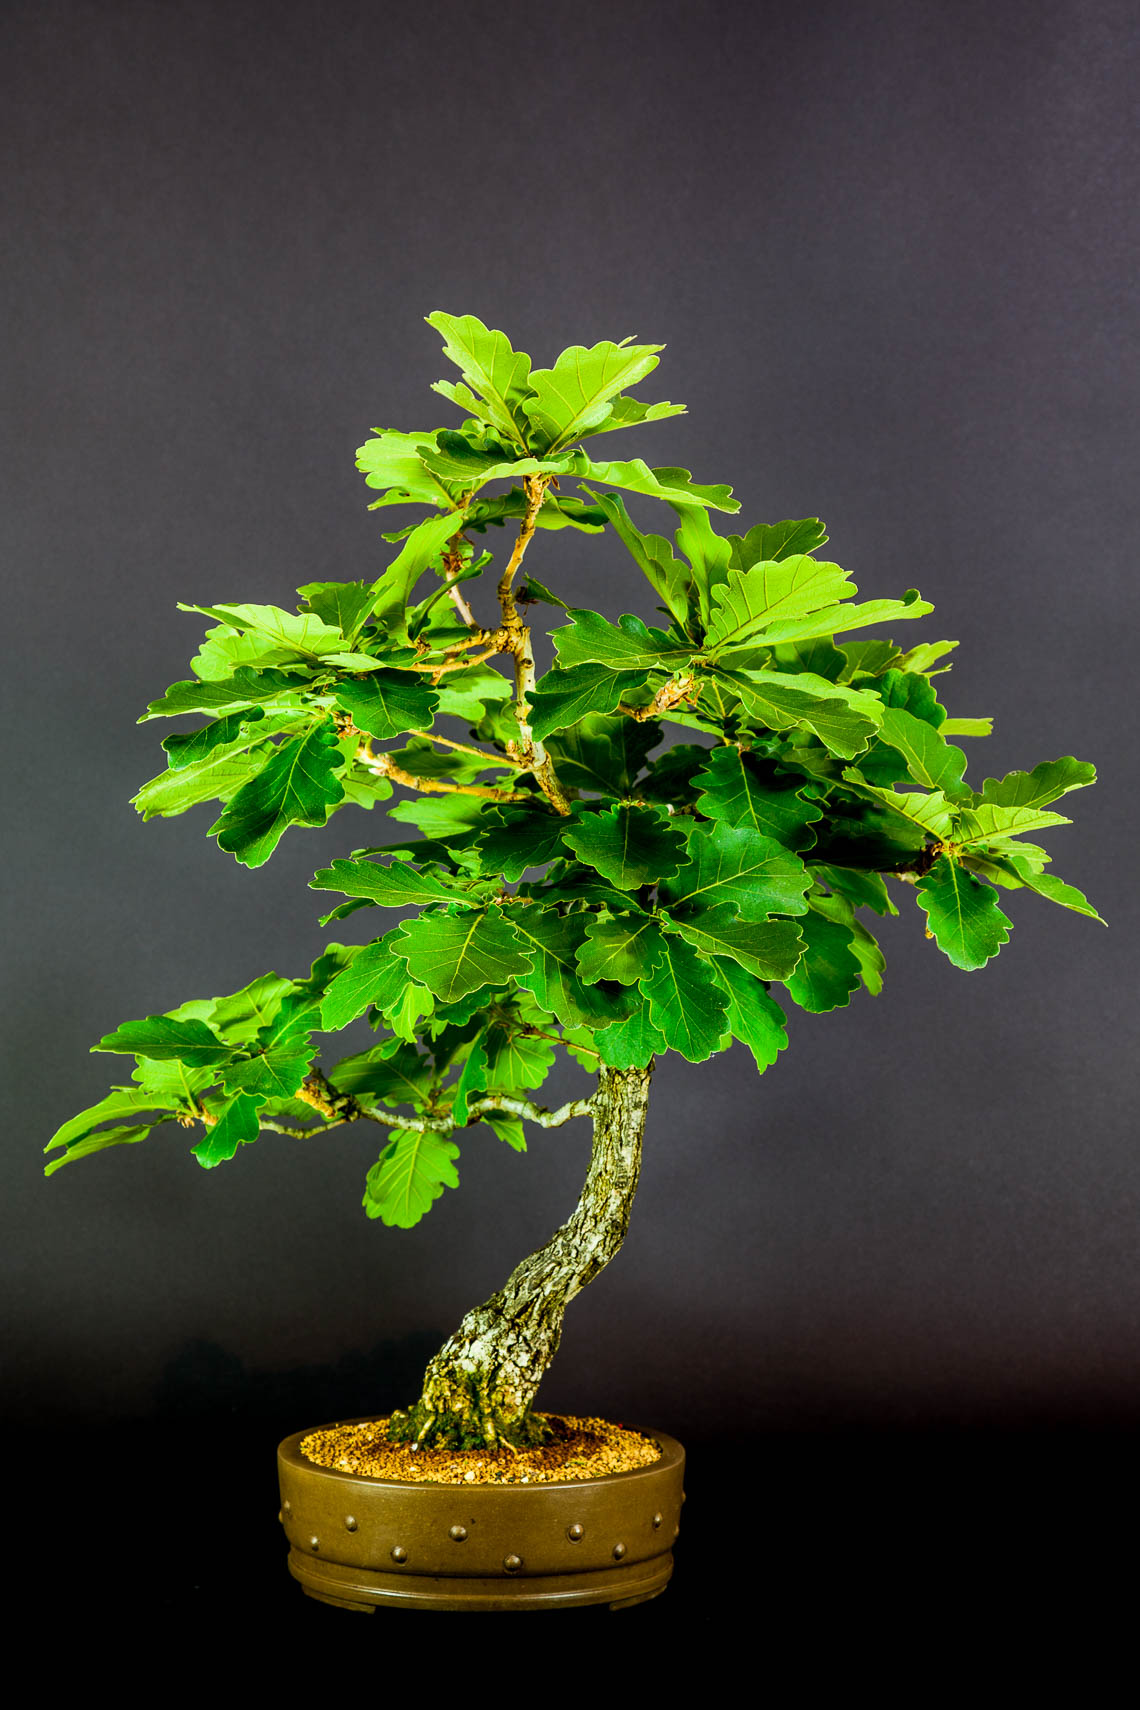 20160501_Bonsai-7-edit